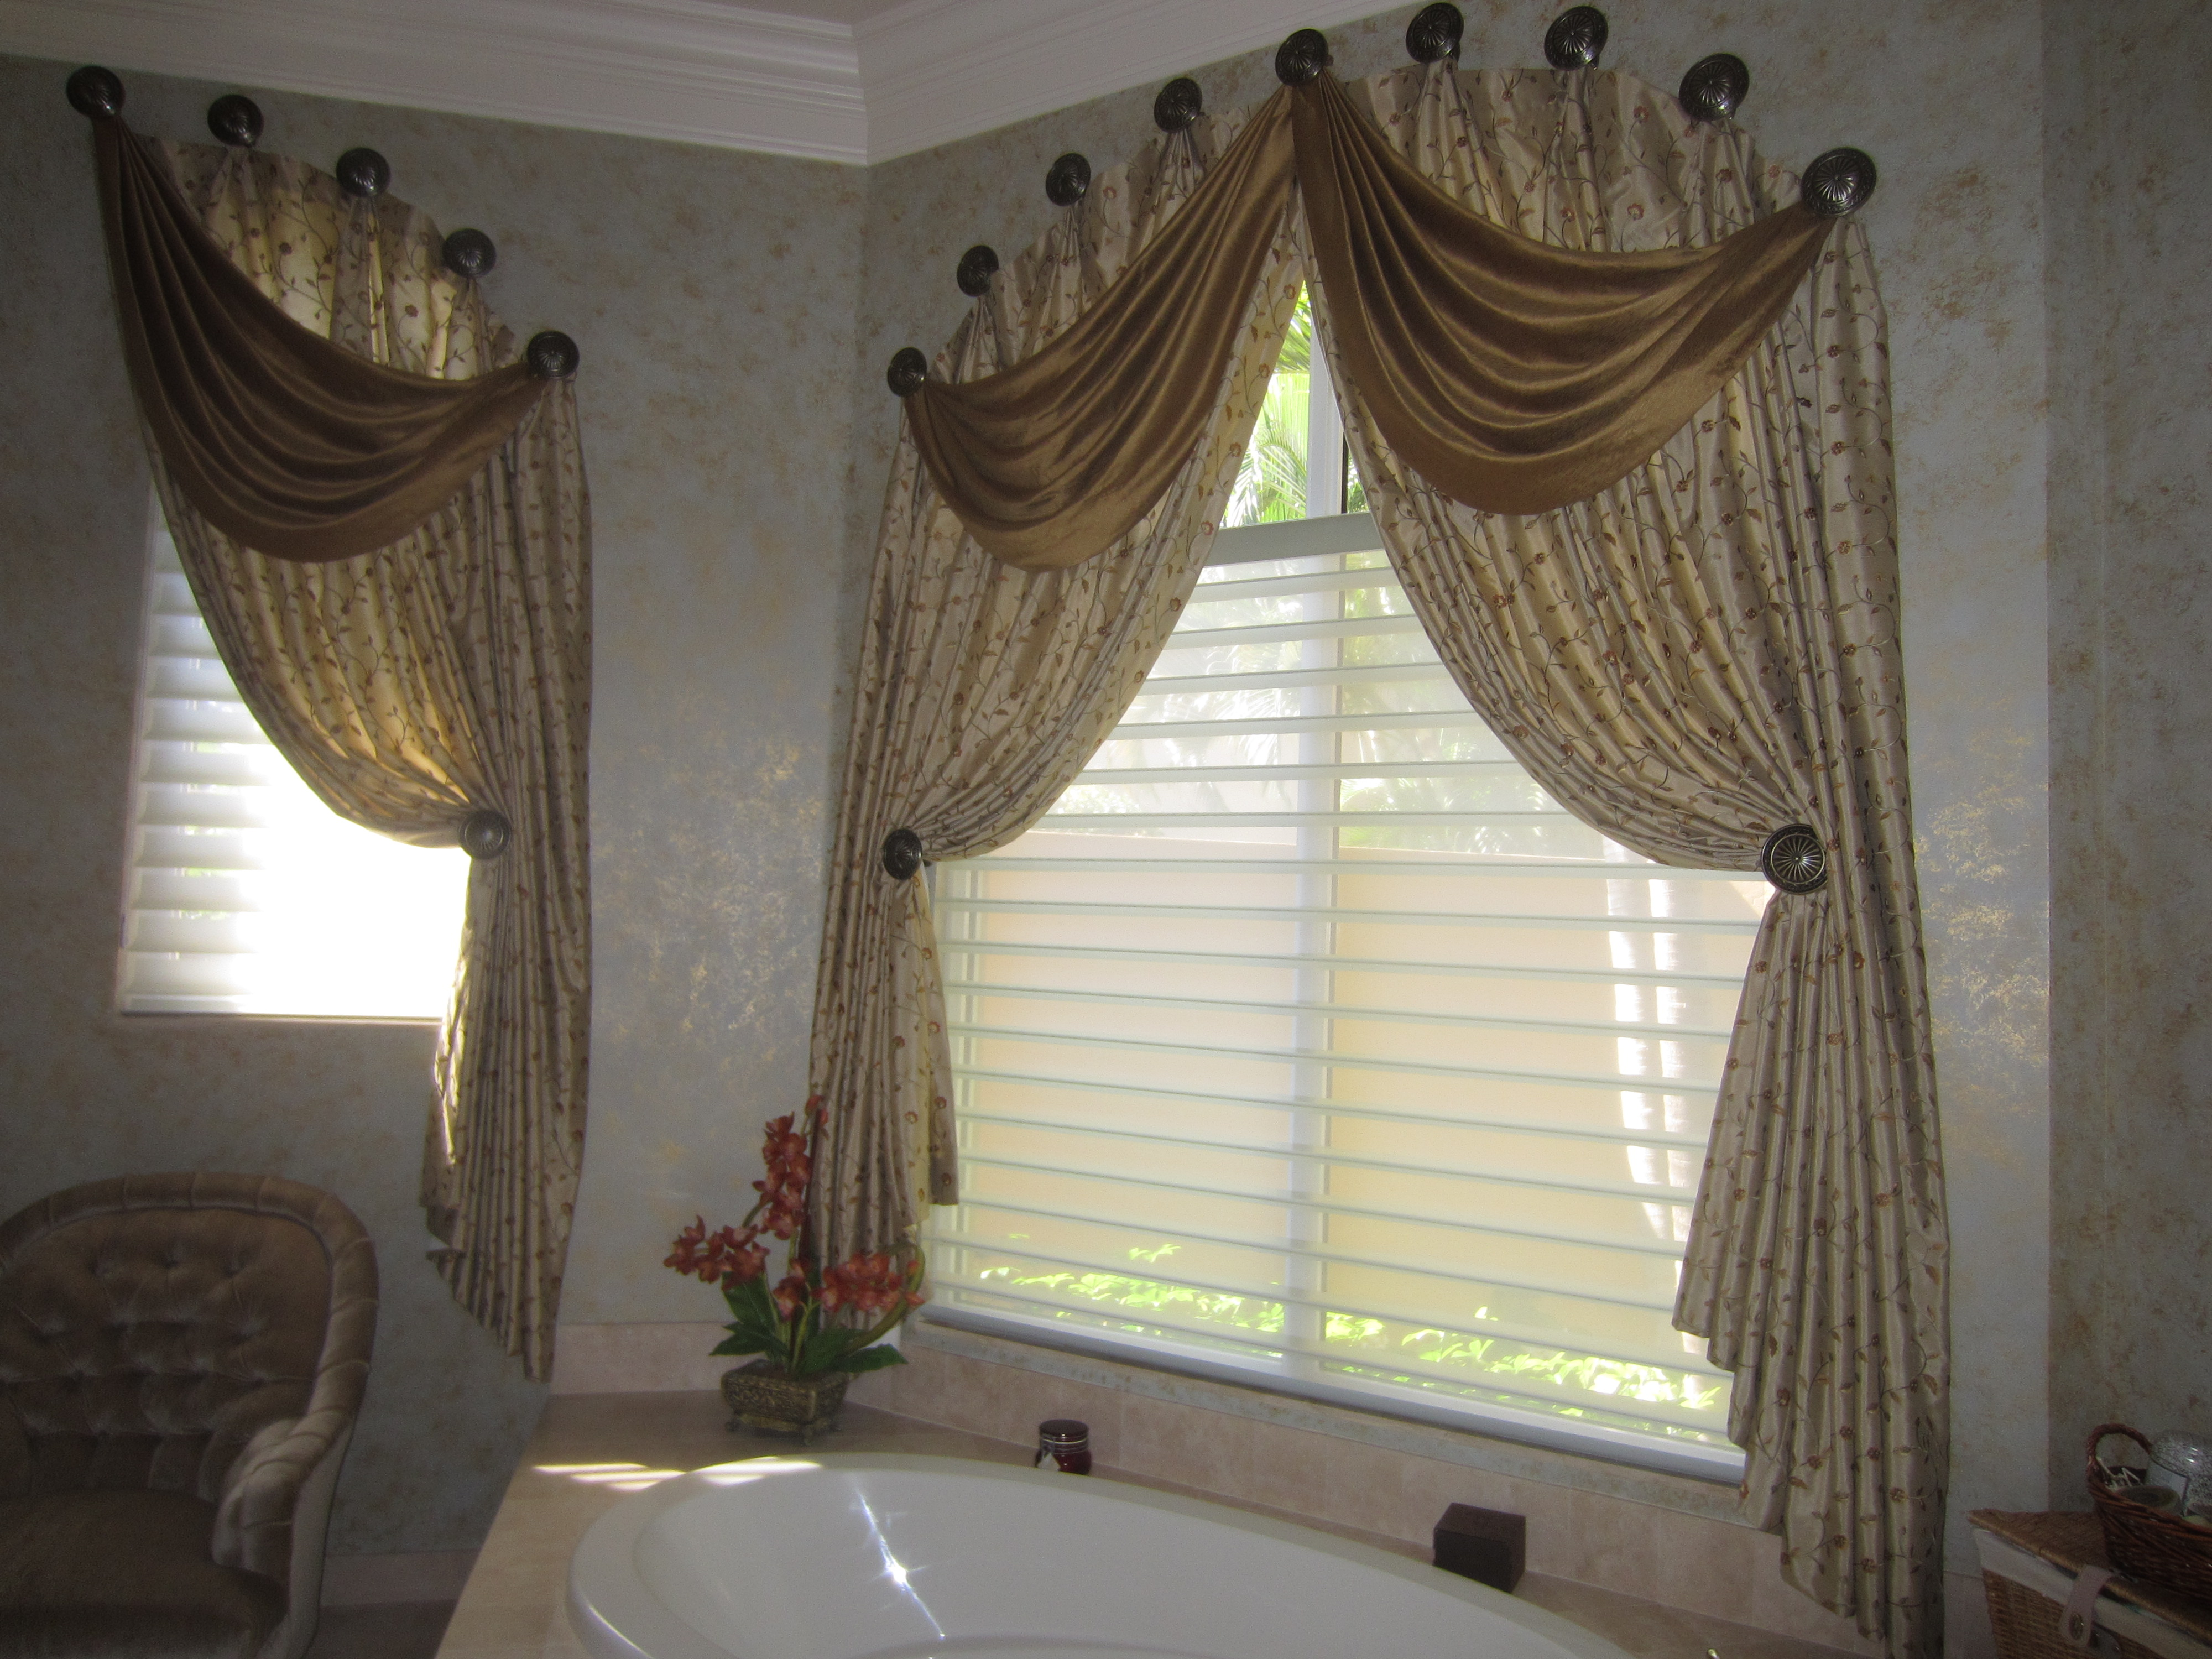 Silk Side Panels on Medallions w/ Swag Overlays over Hunter Douglas Motorized Silhouettes